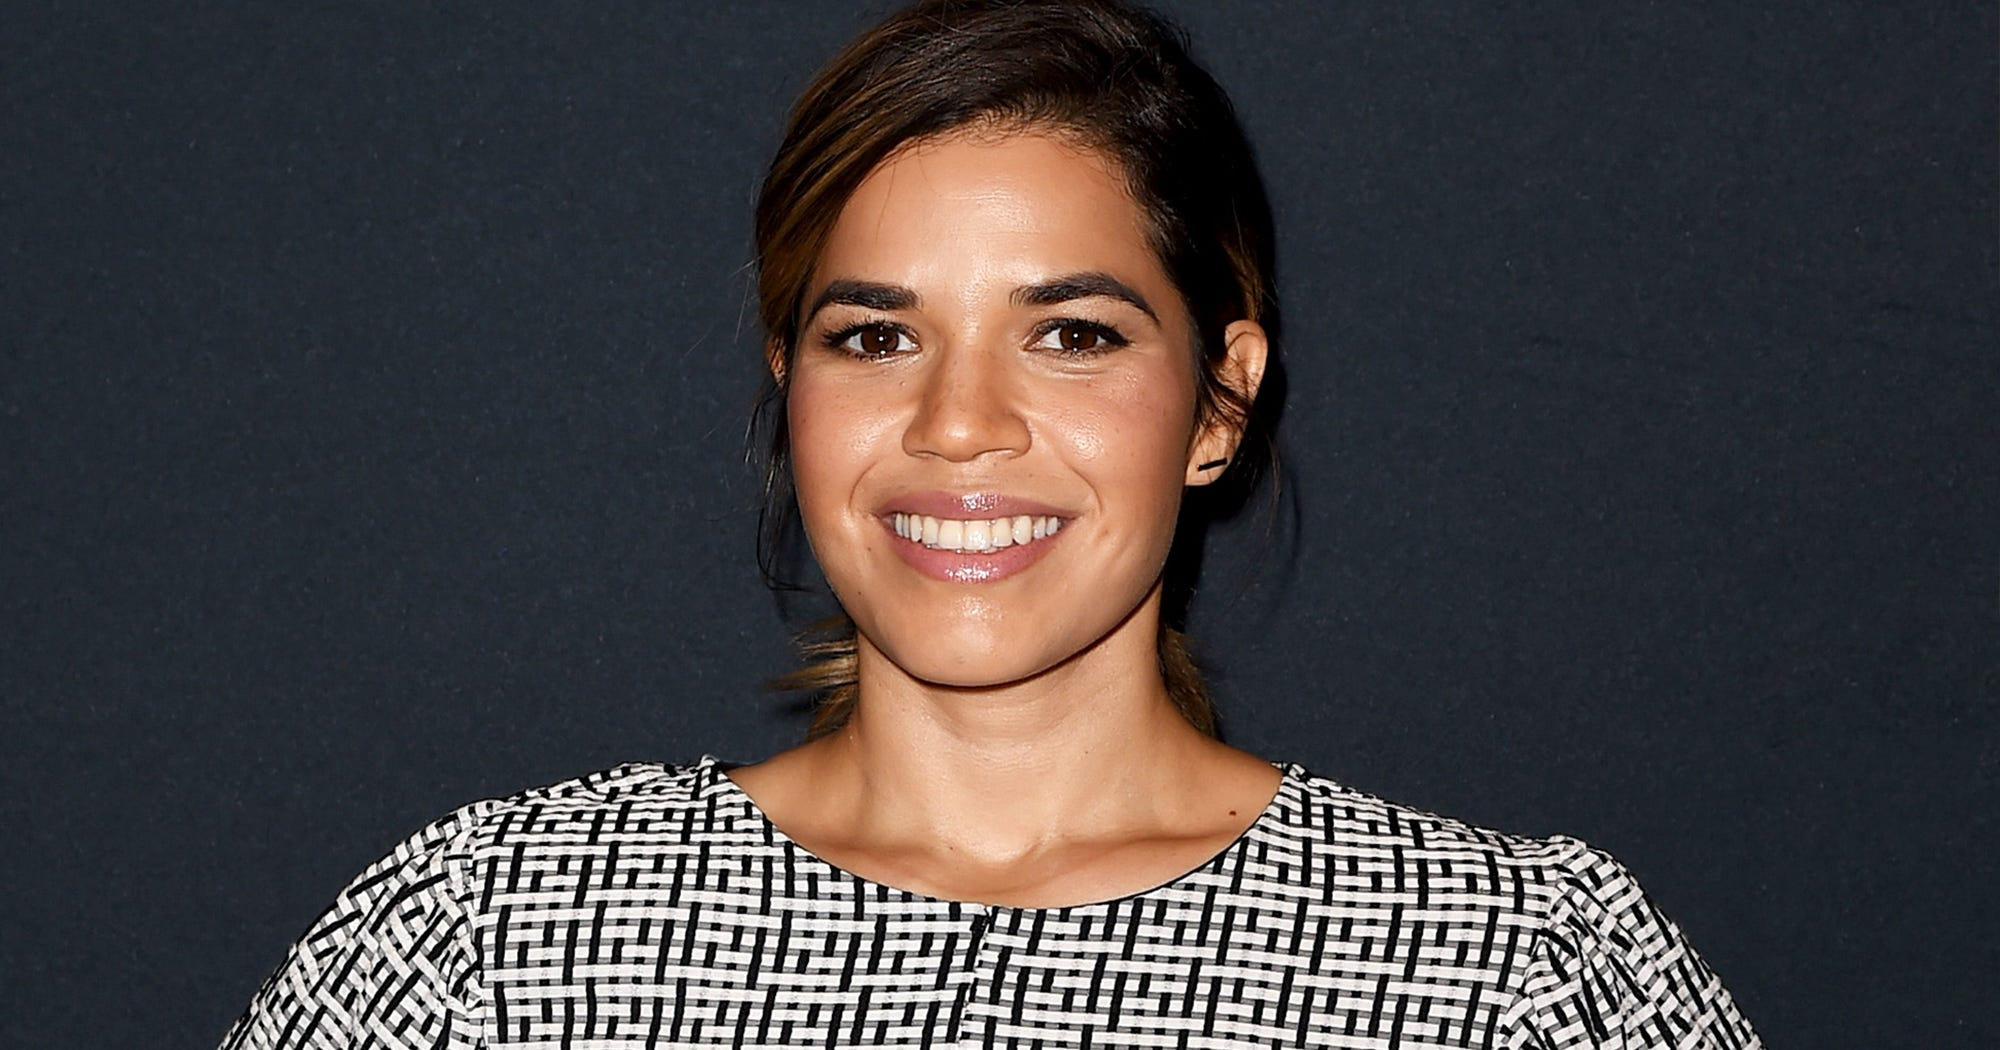 America Ferrera Shares How Having A Baby Changed Her Body Image